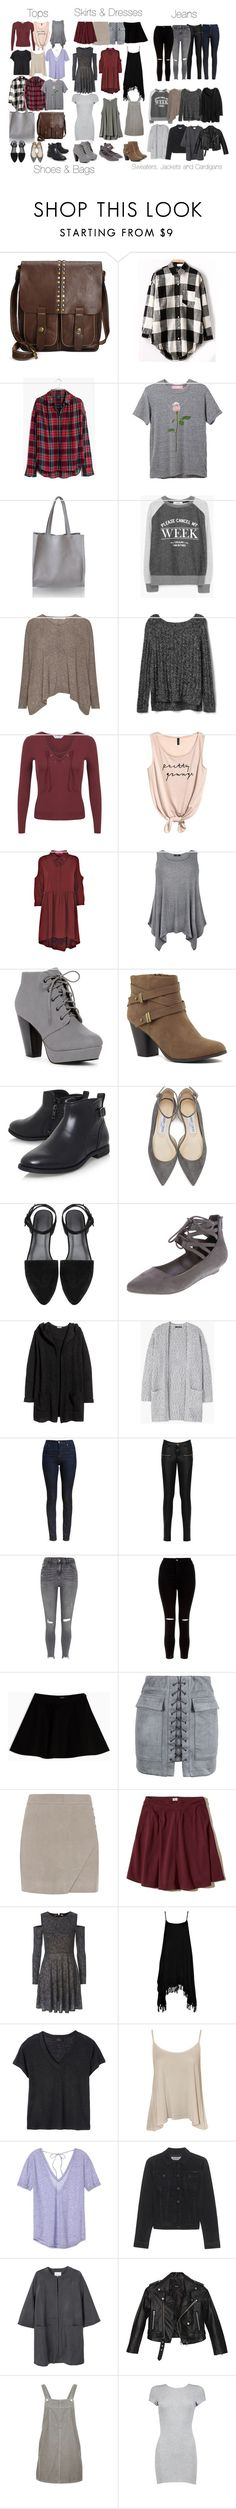 """""""Stefan Inspired Essentials"""" by fangsandfashion ❤ liked on Polyvore featuring Patricia Nash, Madewell, MANGO, Gap, Miss Selfridge, Boohoo, H&M, Jimmy Choo, Barbour and WearAll"""